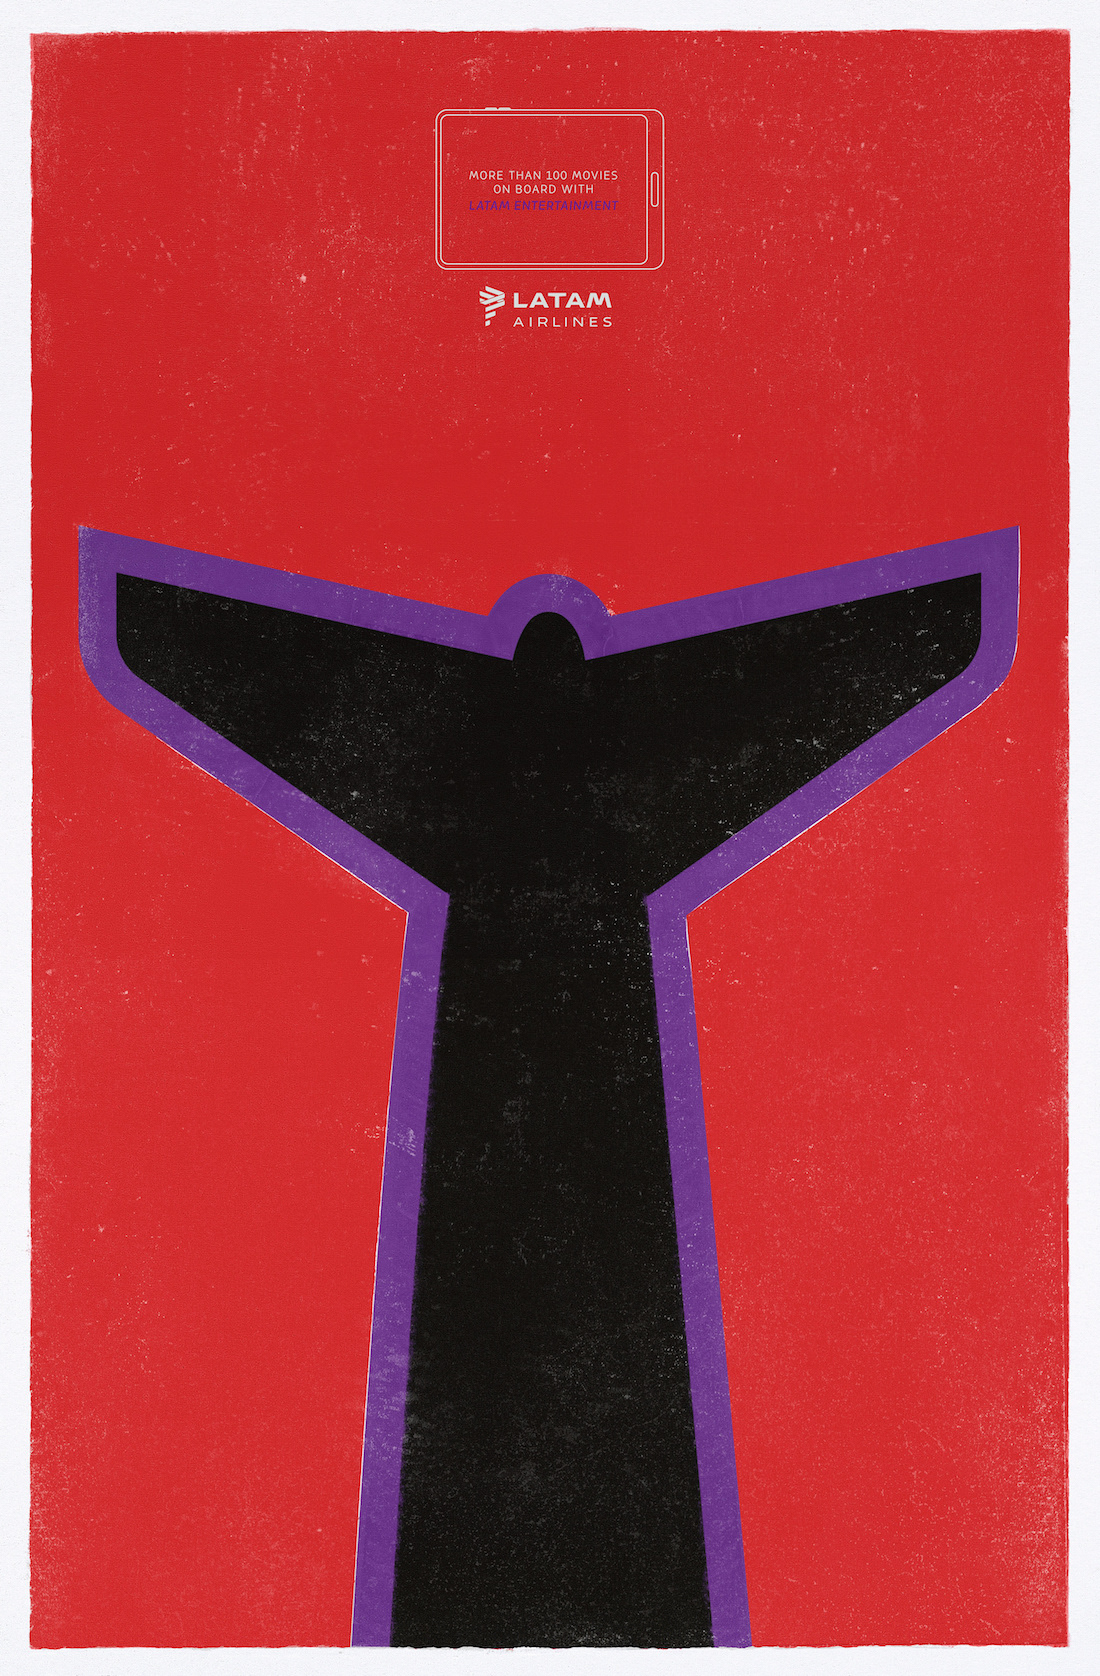 Latam Airlines: Movies - Magneto